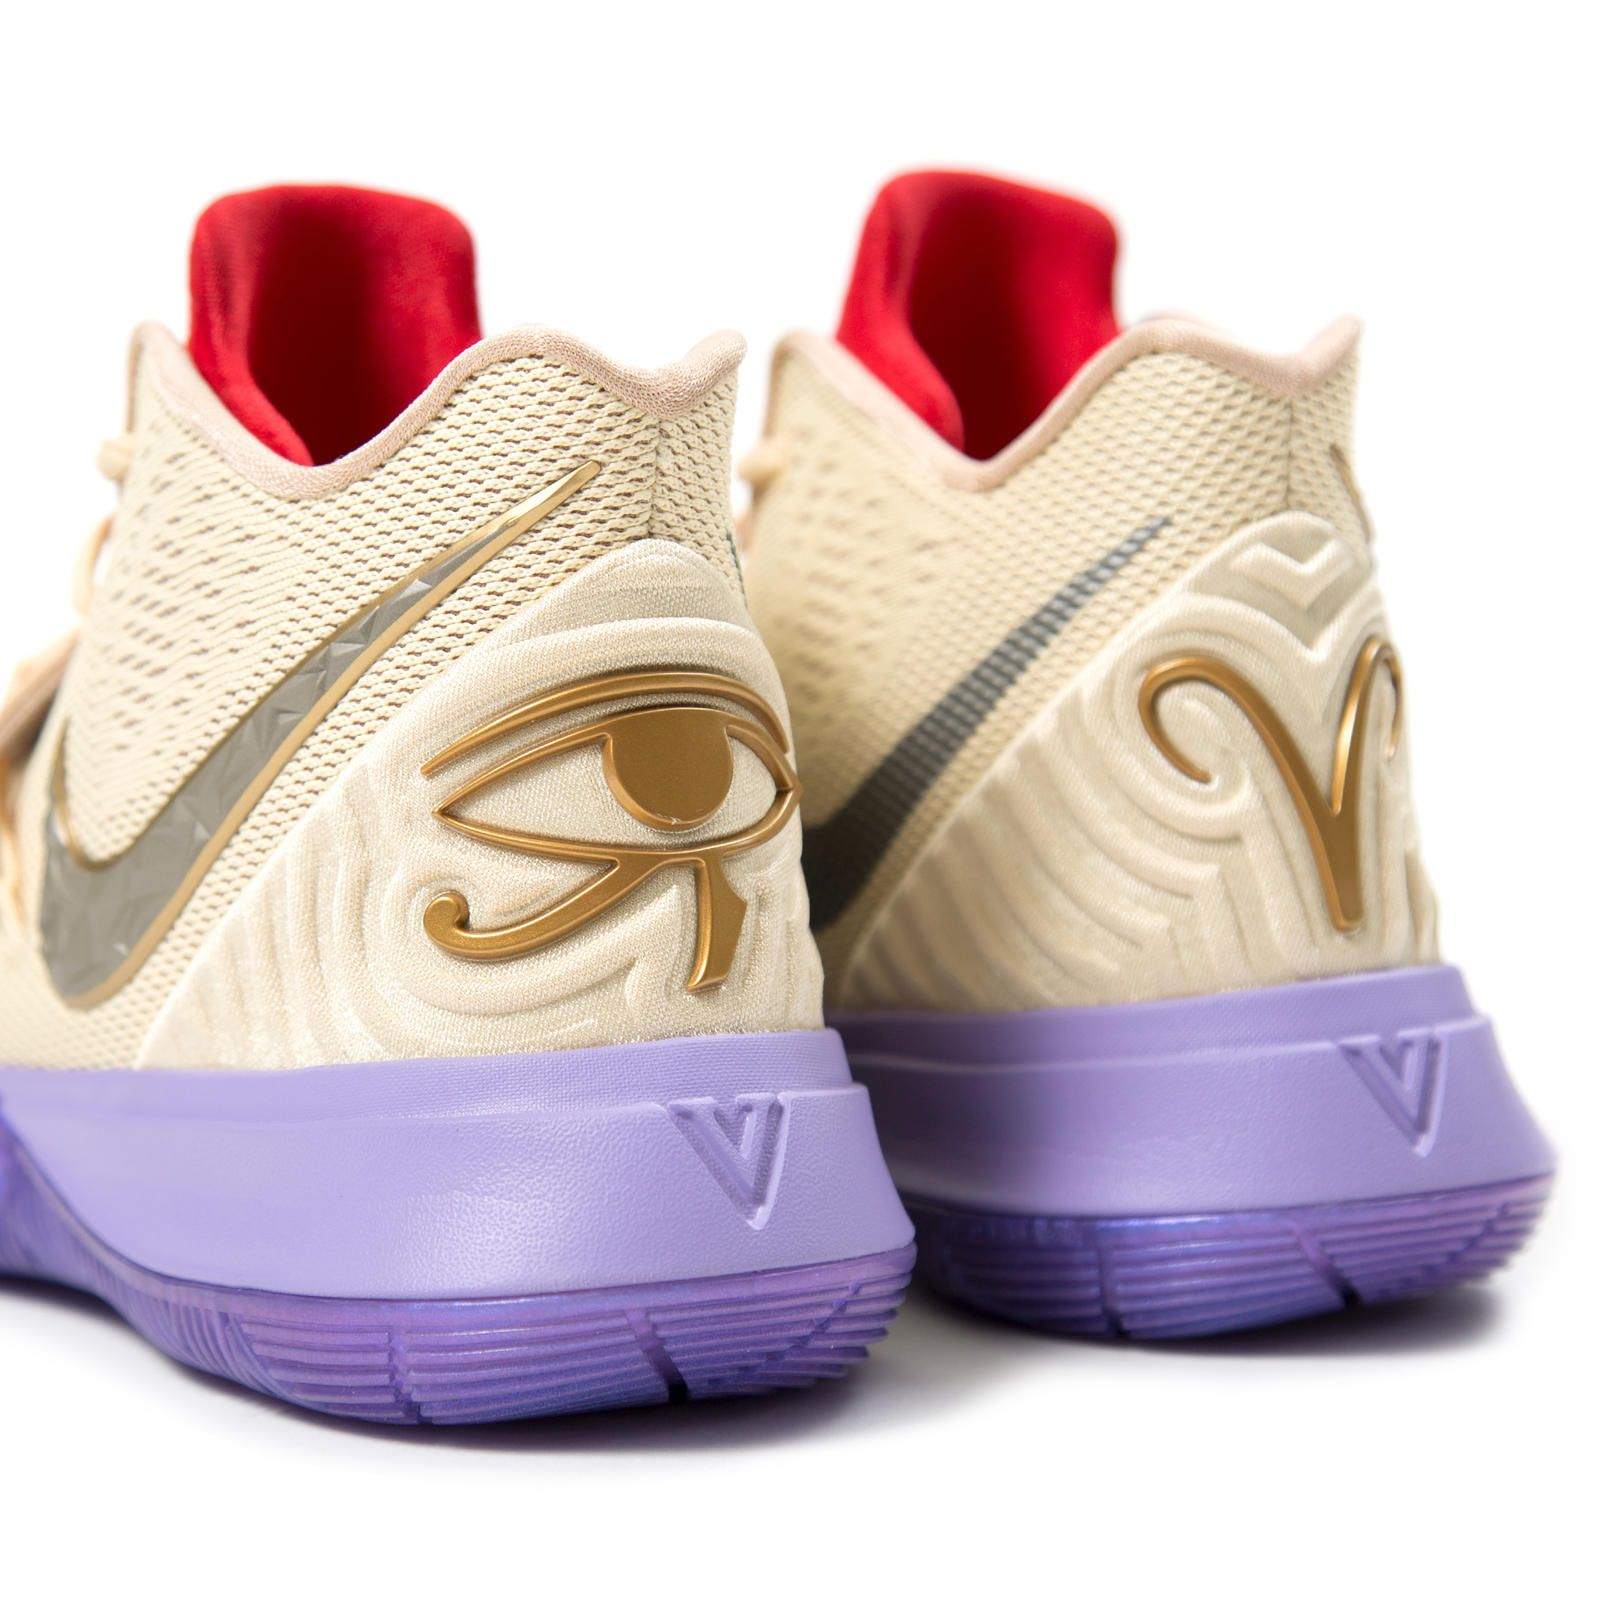 Irving for Collaboration Kyrie Concepts All Taps an Seeing f6yIbY7gv